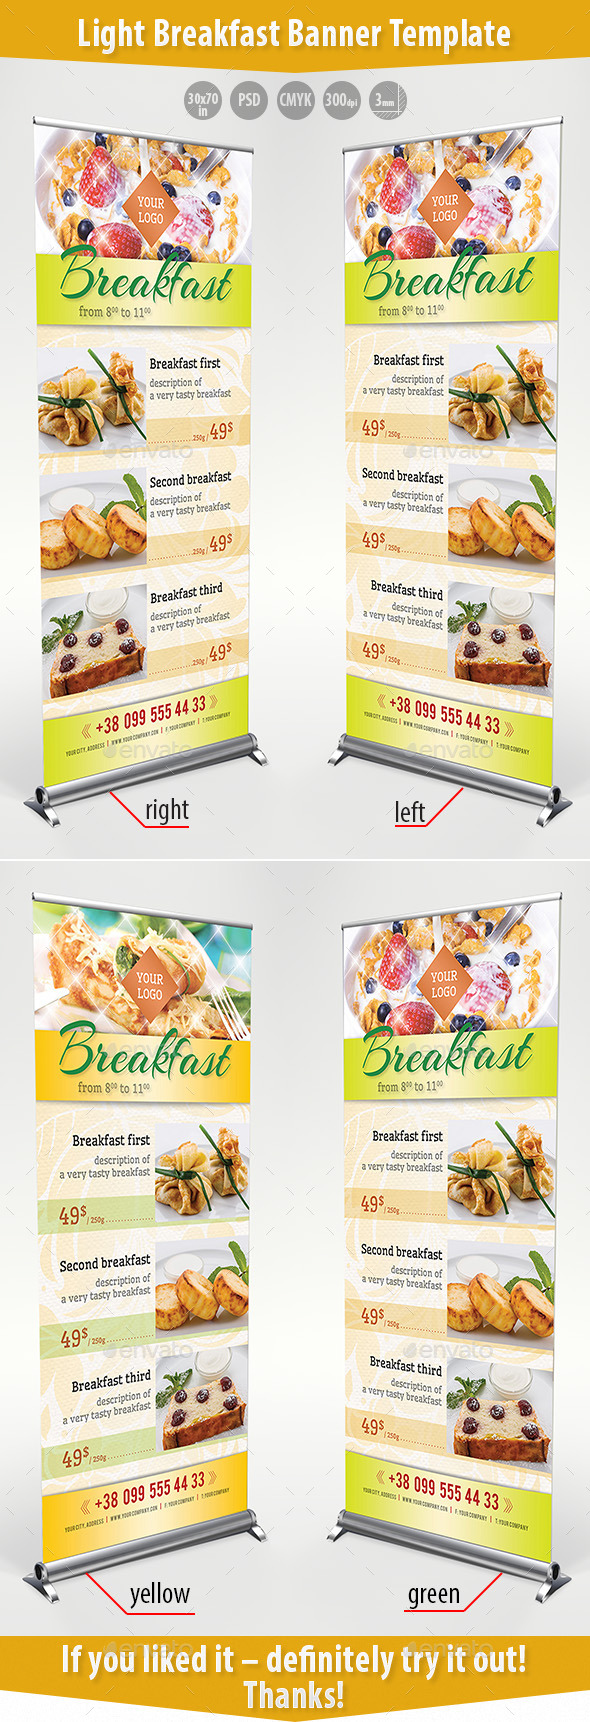 GraphicRiver Light Breakfast Banner Template 11139776